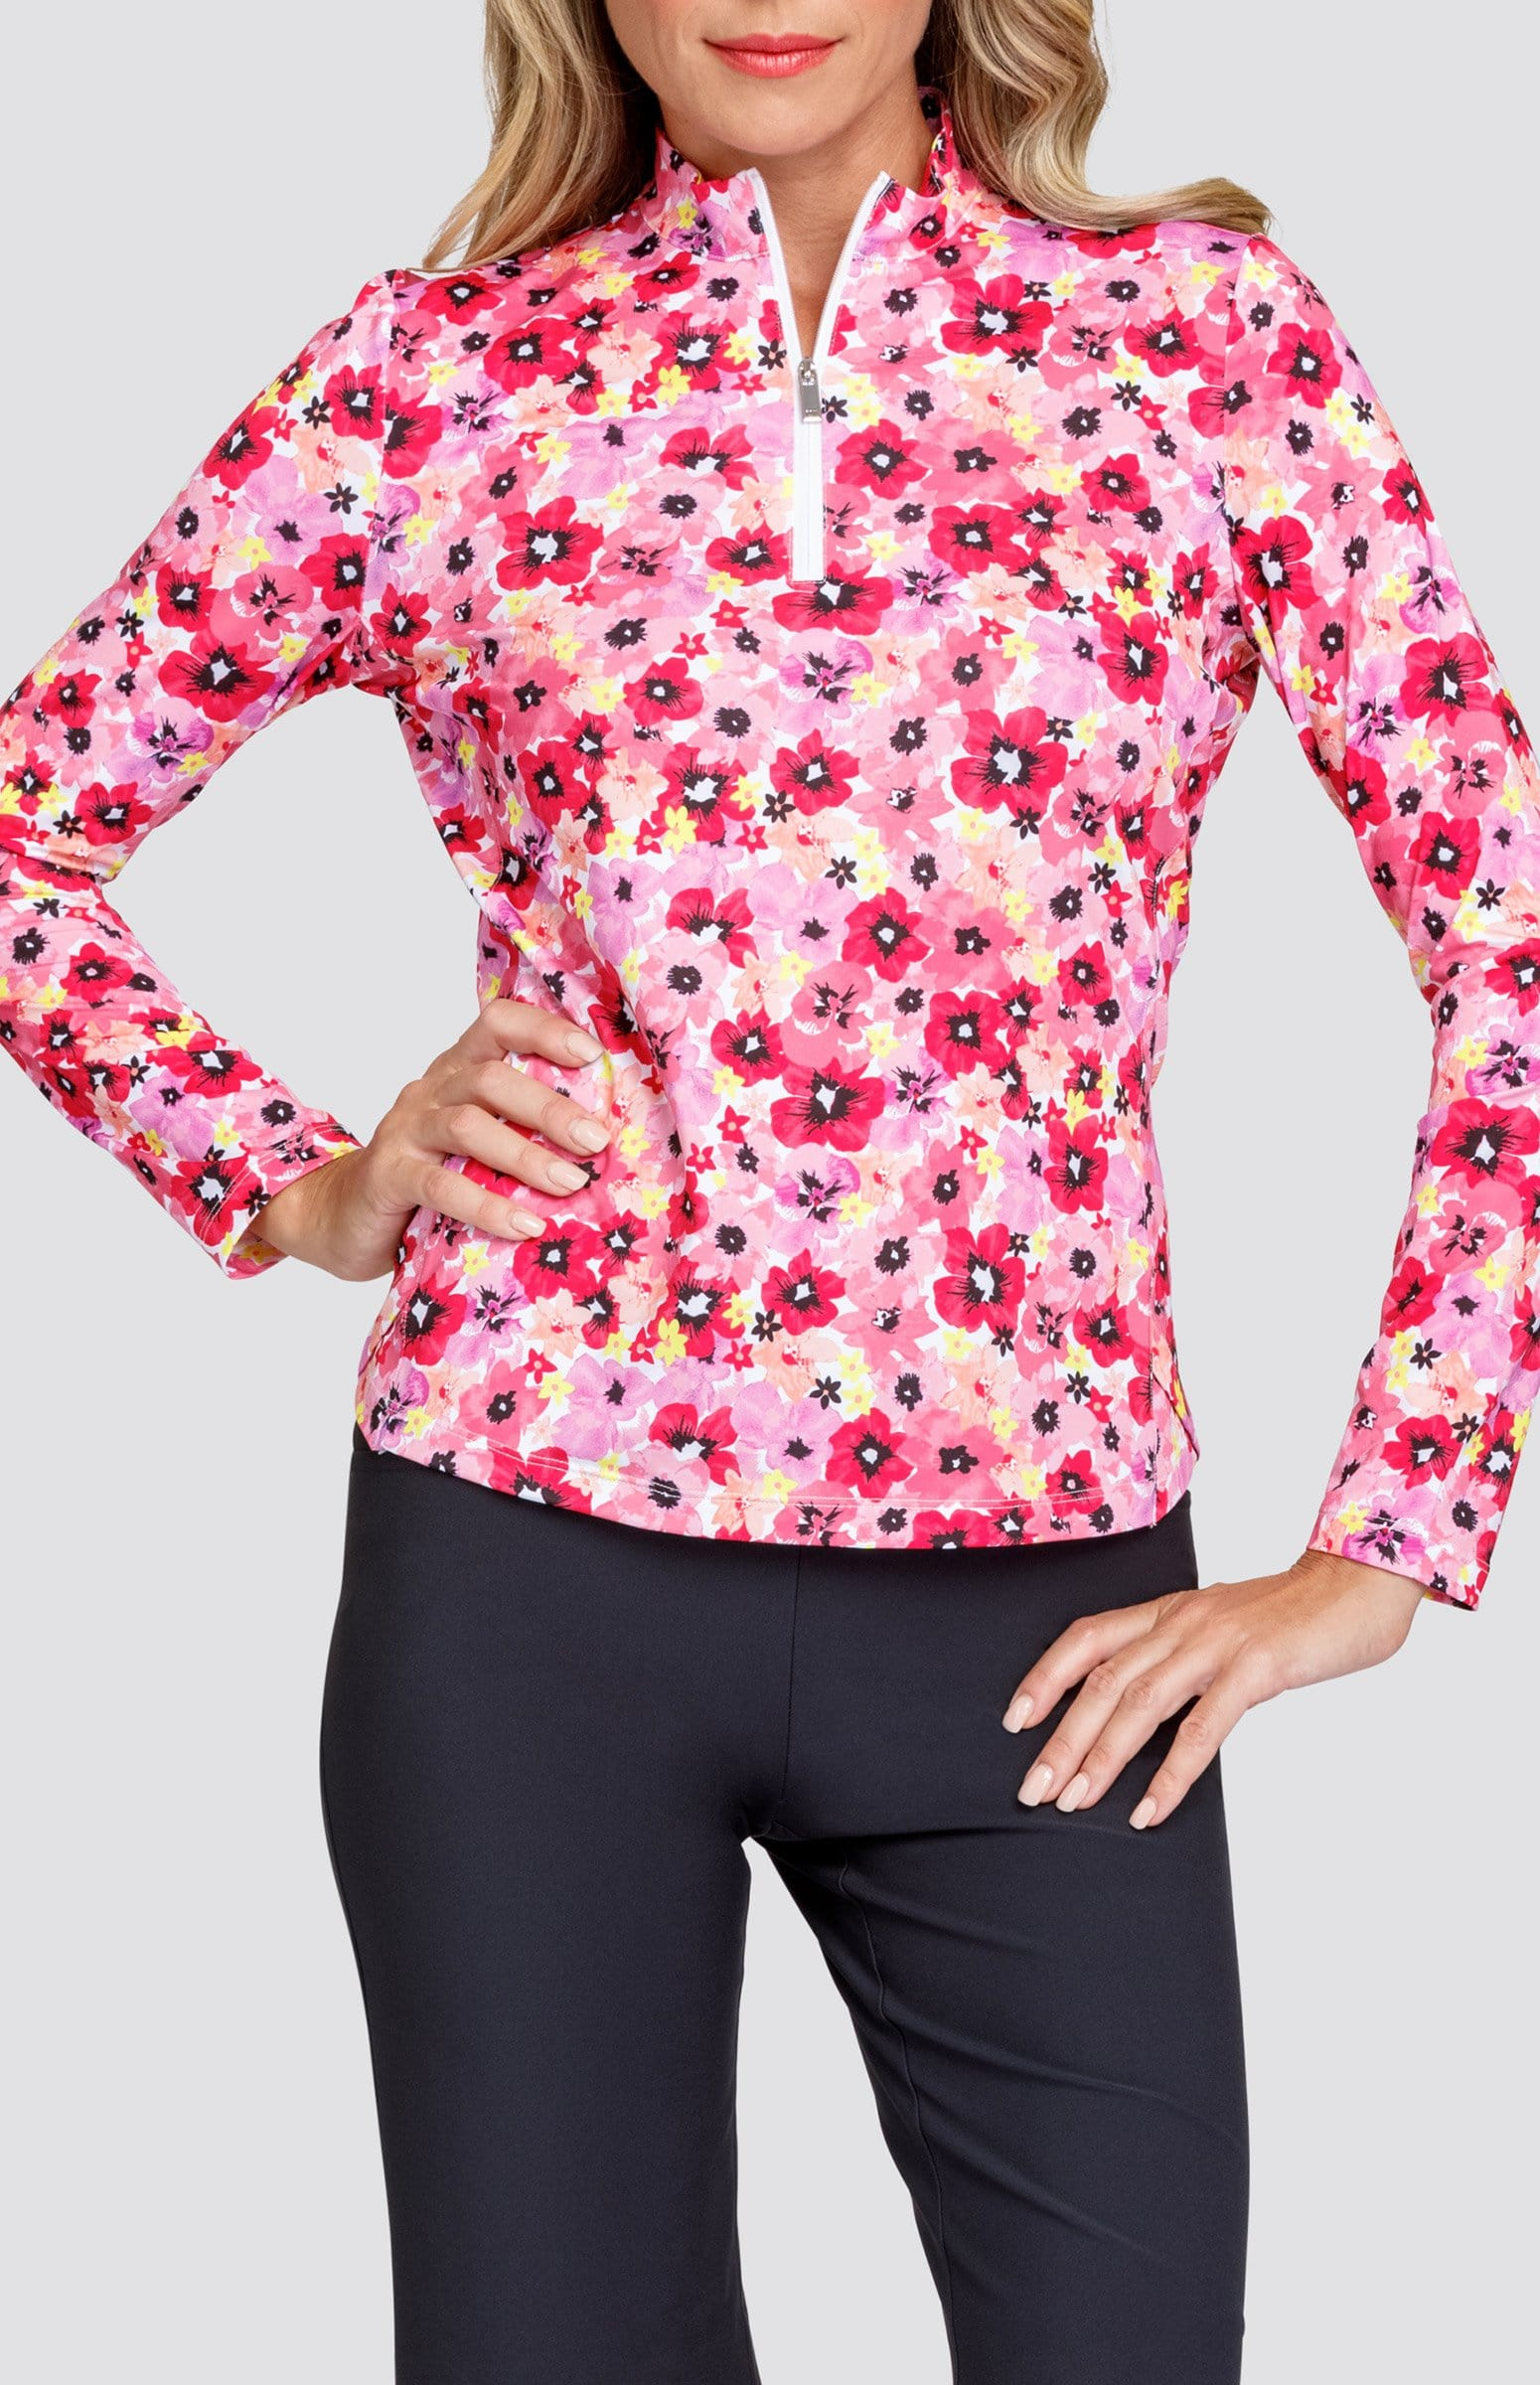 Cora Top - Playful Posy